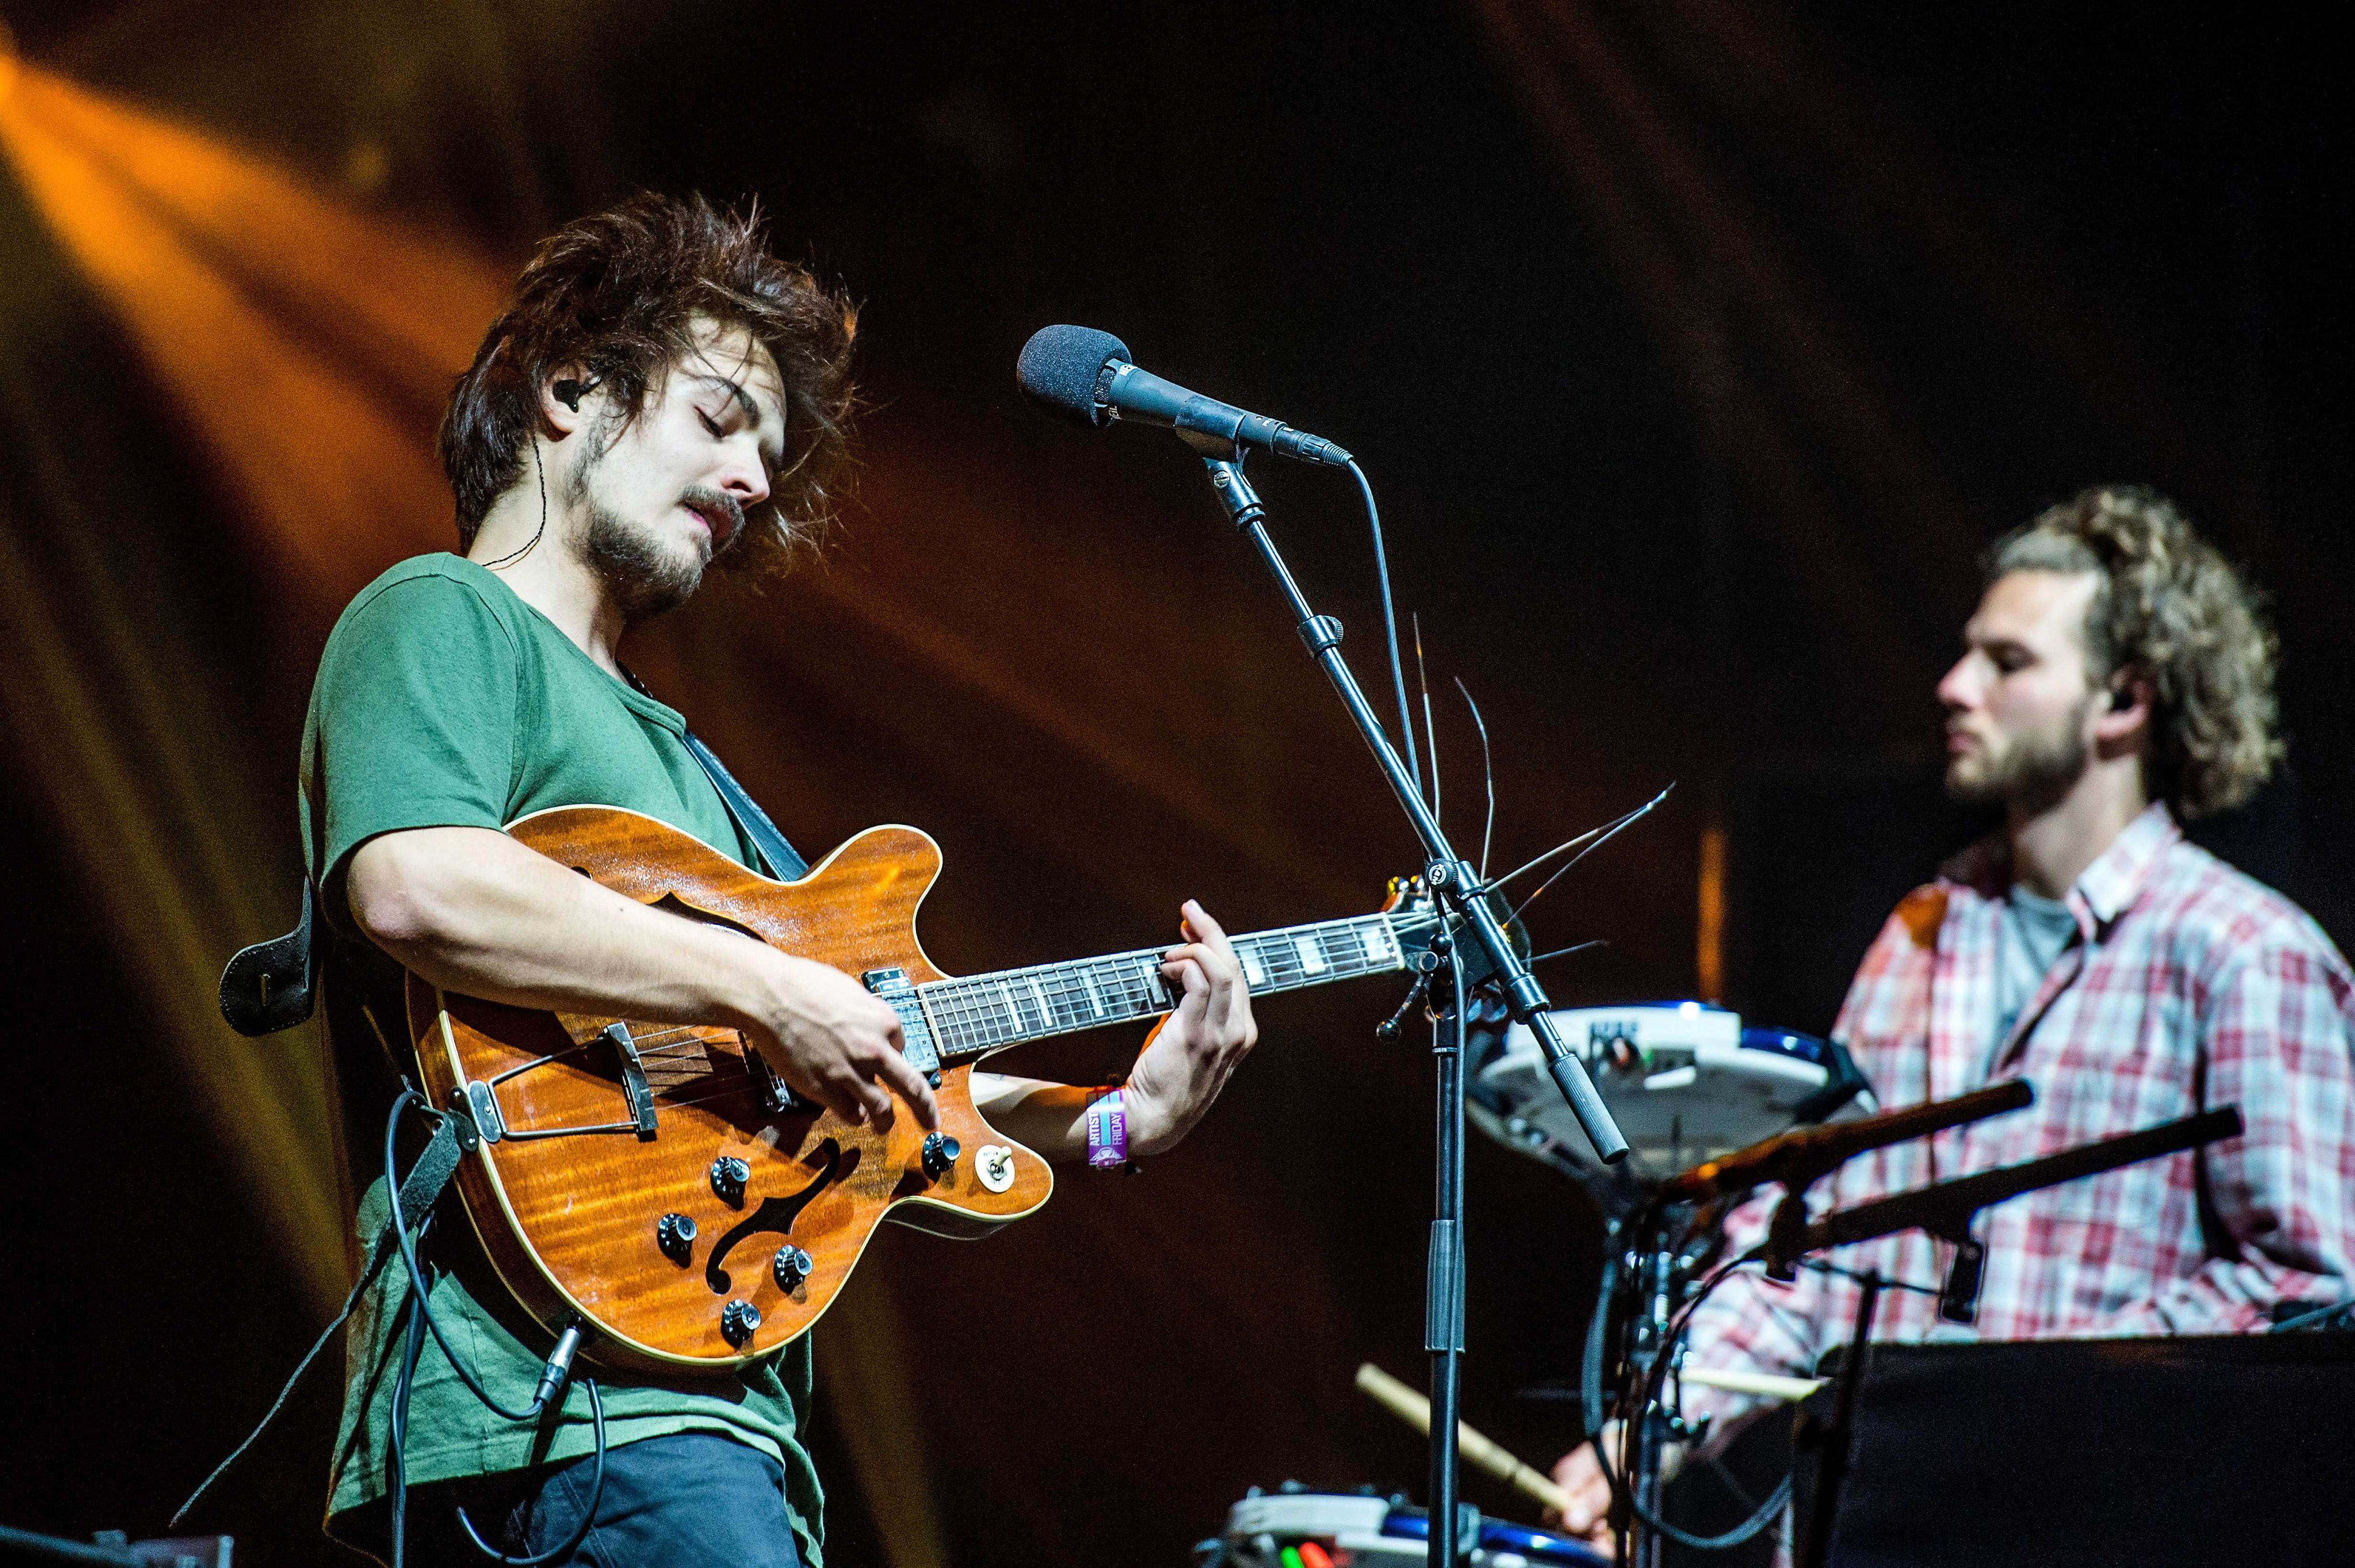 epa04355451 Singer and guitarist Clemens Rehbein (L) of German formation Milky Chance performs on stage during the Lowlands m